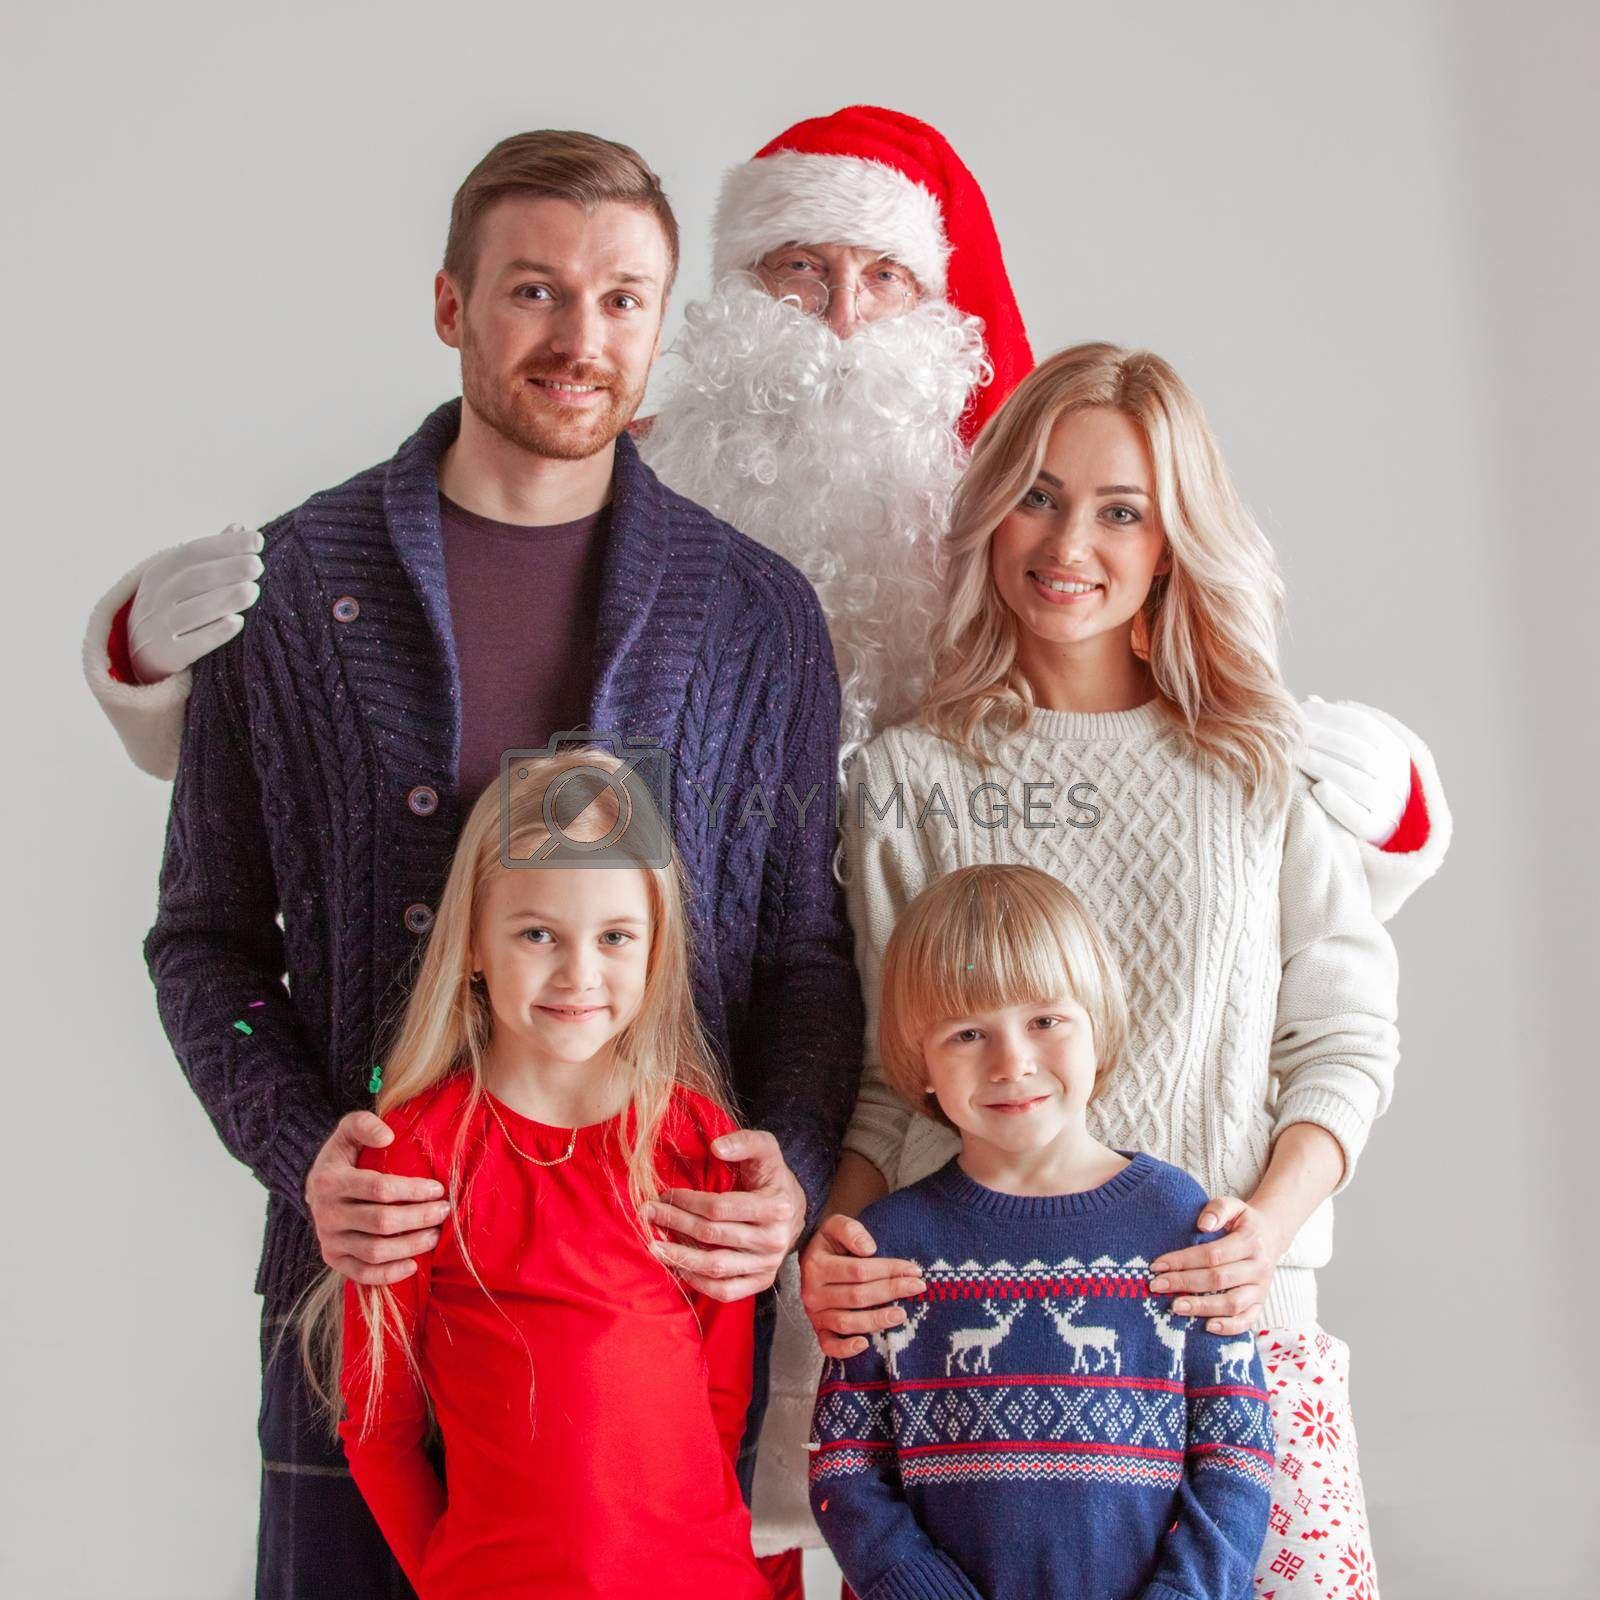 Christmas portrait of happy smiling family with two children and Santa Claus embracing them on gray background